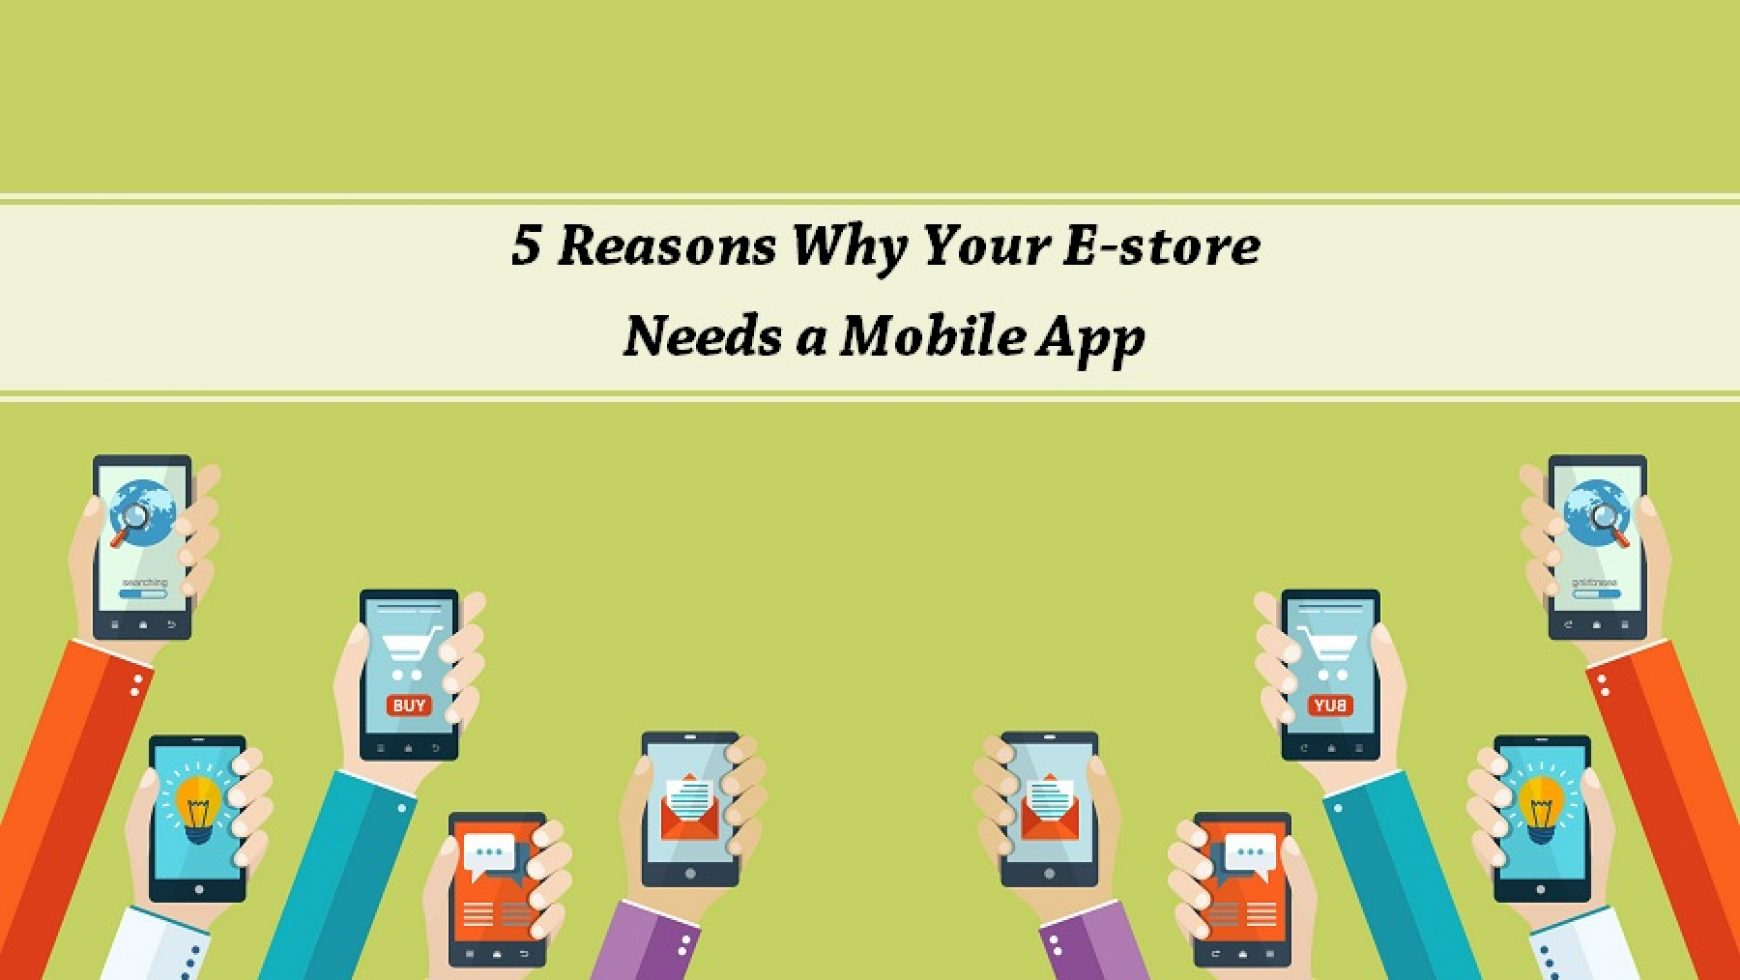 5 Reasons Why Your E-store Needs a Mobile App